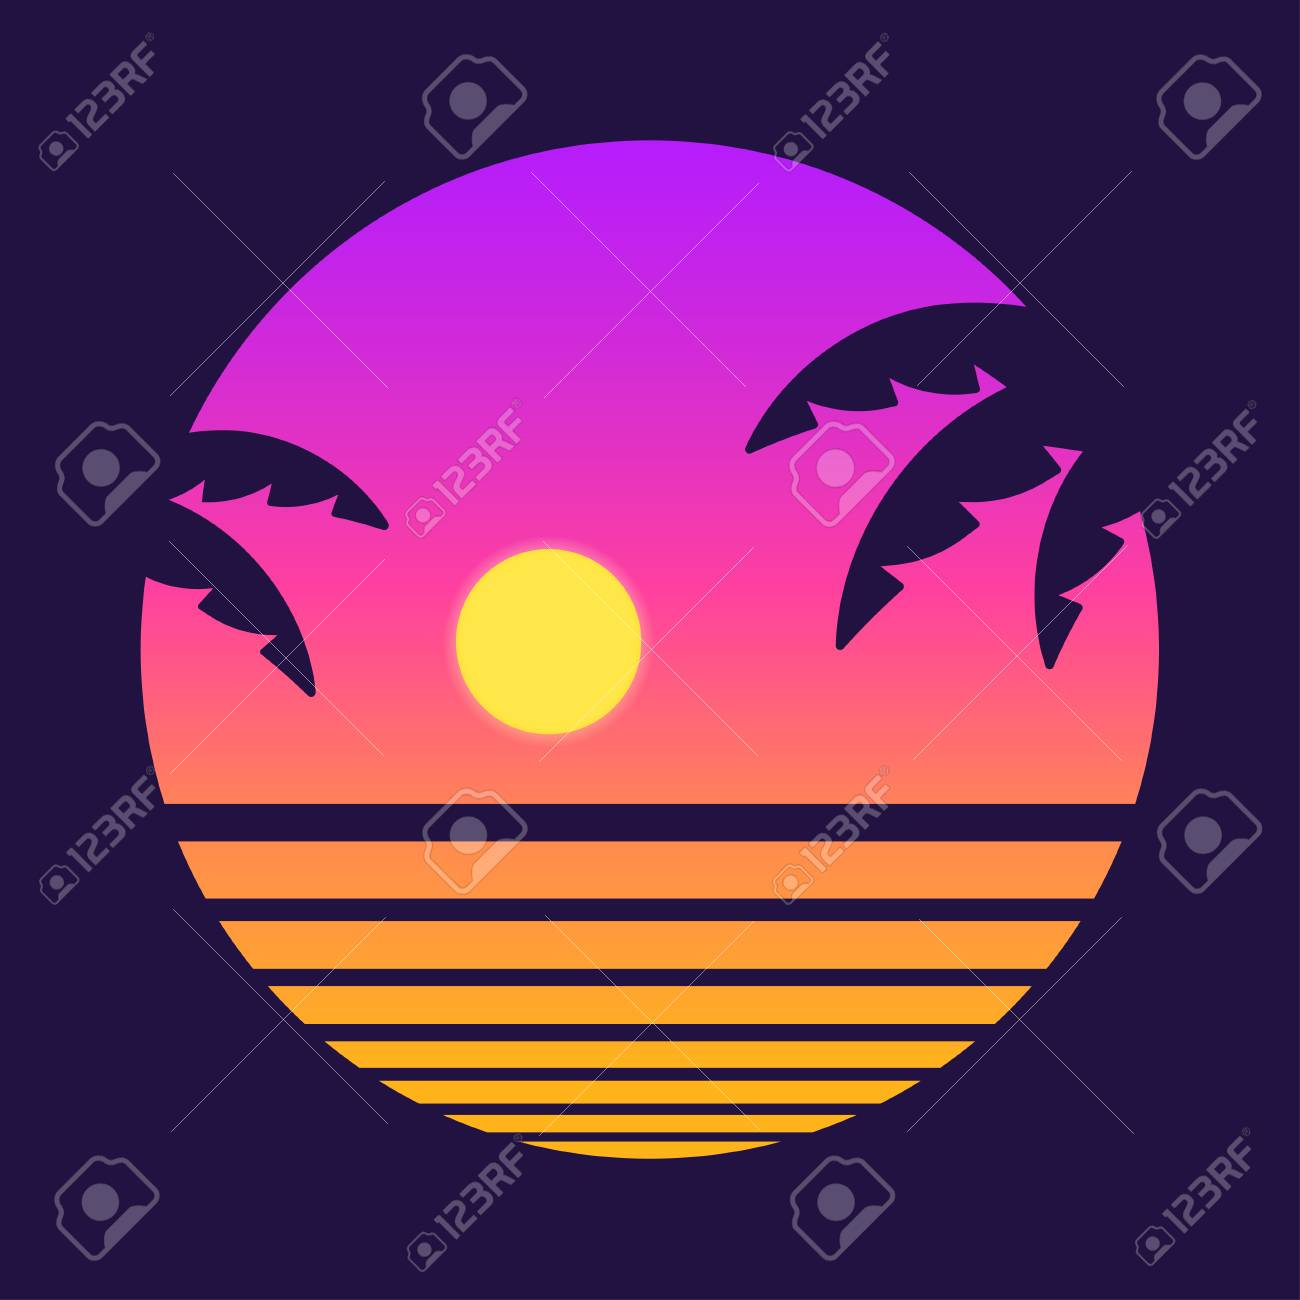 Retro style tropical sunset with palm tree silhouette and gradient background. Classic 80s design vector illustration. - 94306809